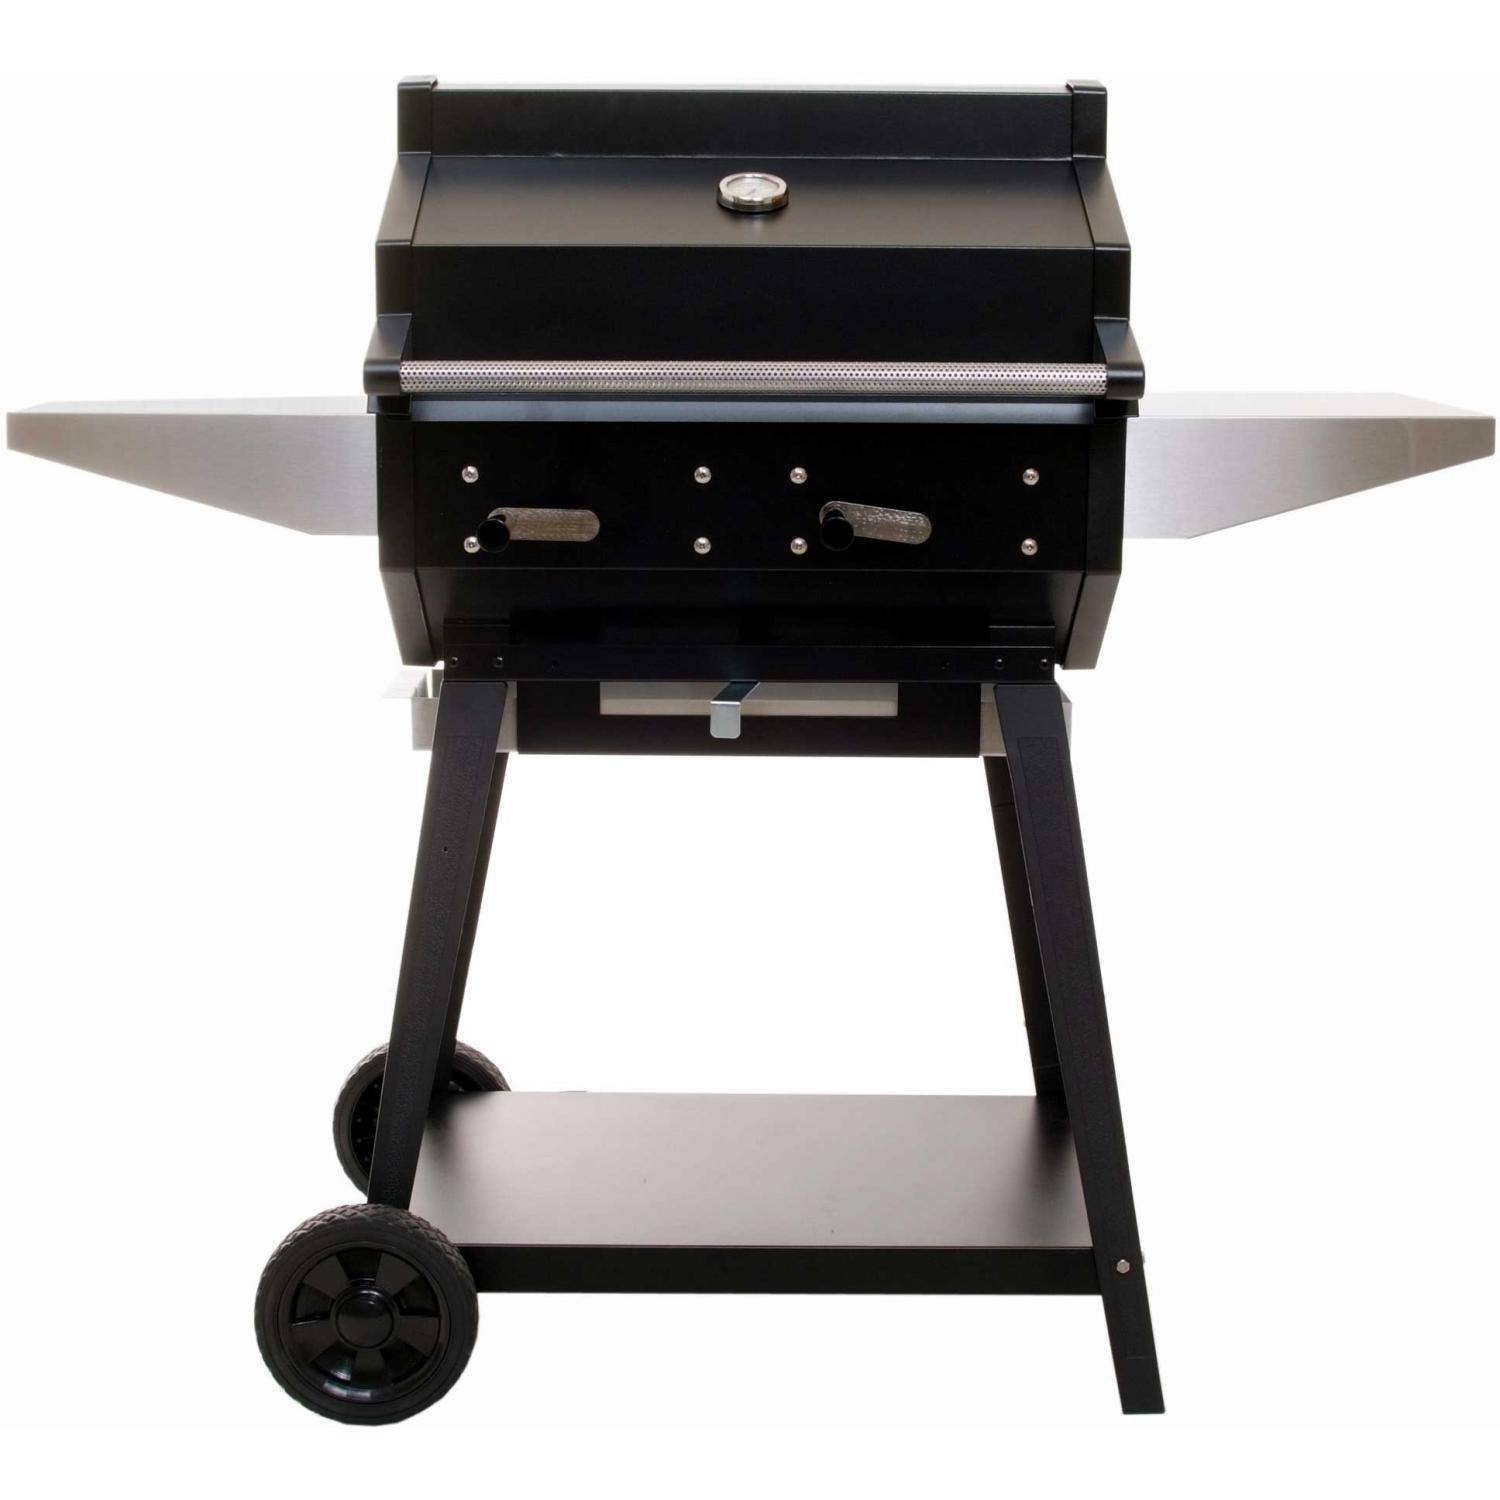 Charcoal Grills Images - Reverse Search